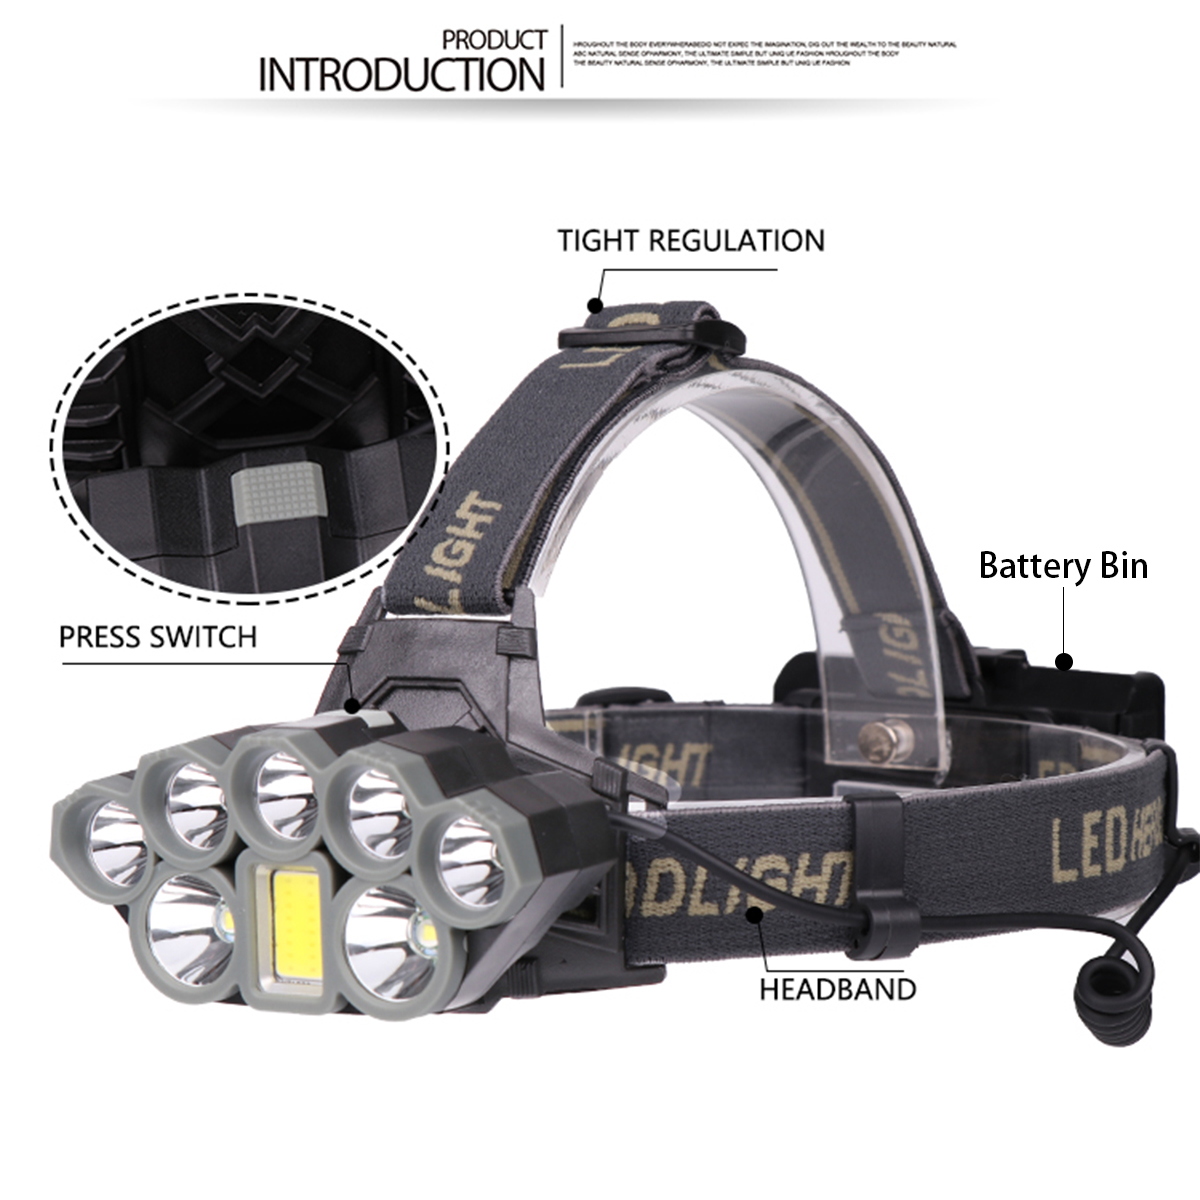 USB Rechargeable 80000LM LED Head Lamp Flashlight Torch Headlamp18650 Battery